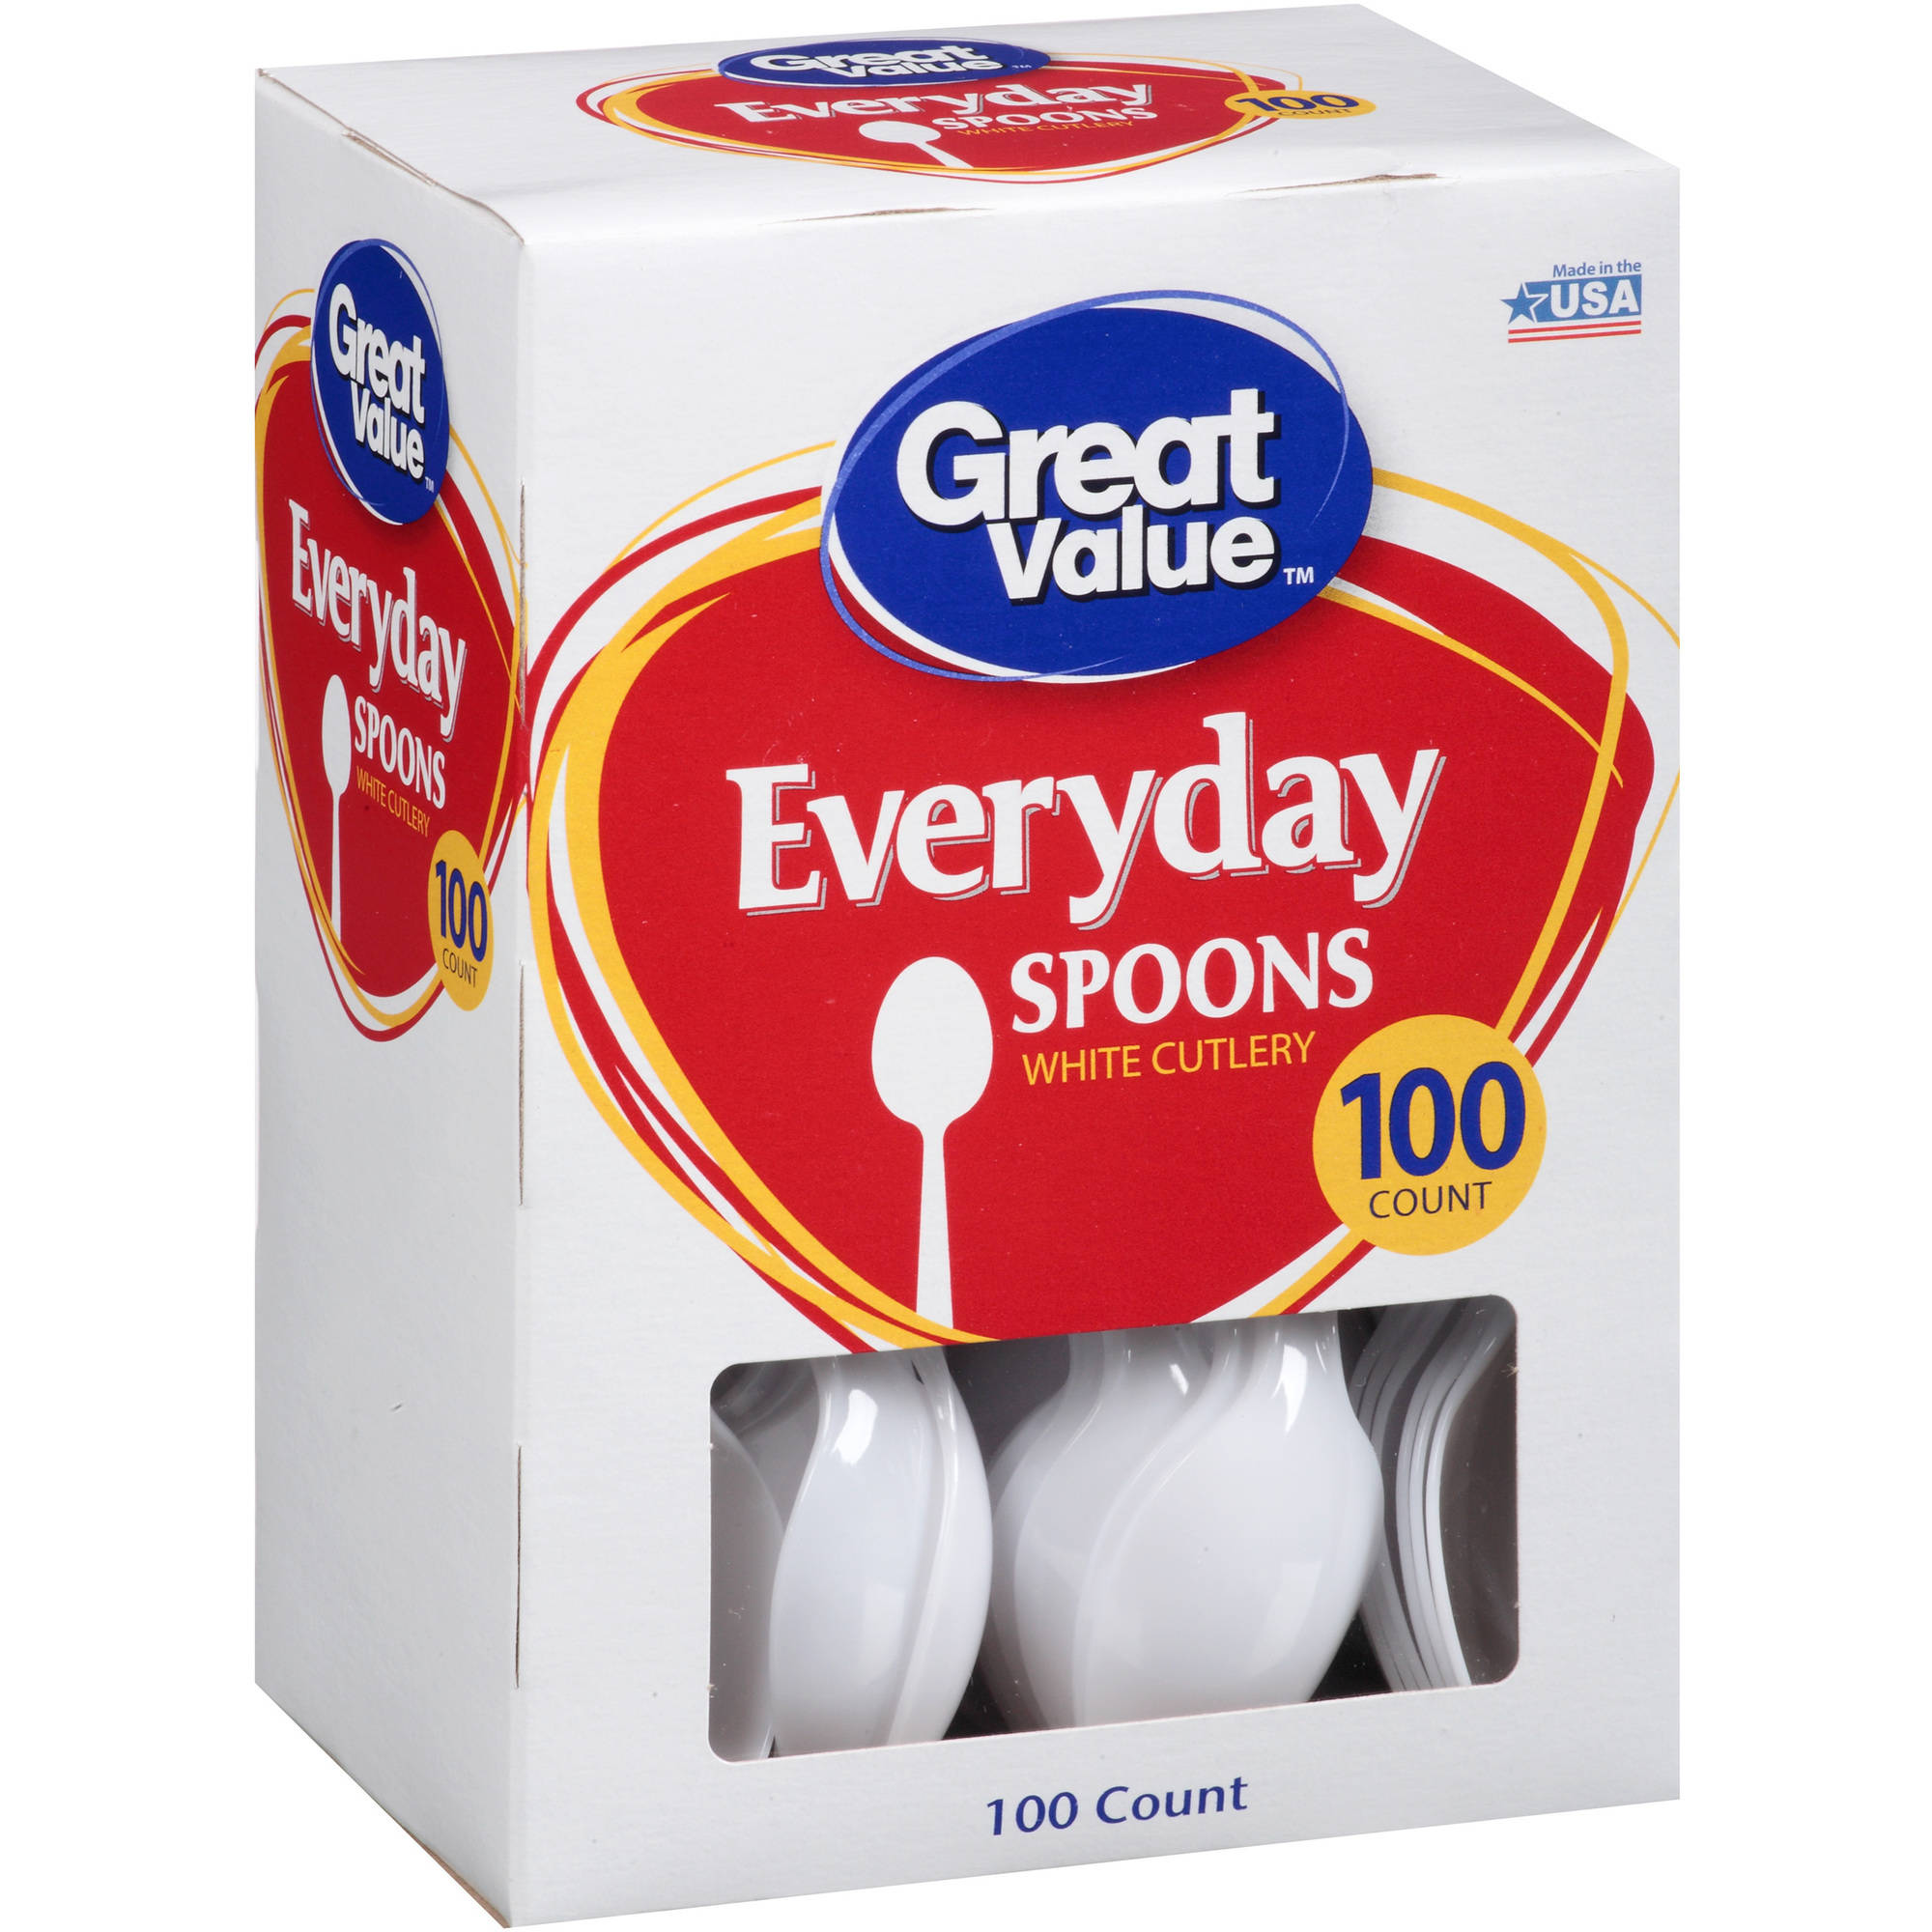 Great Value Everyday Spoons, 100 ct